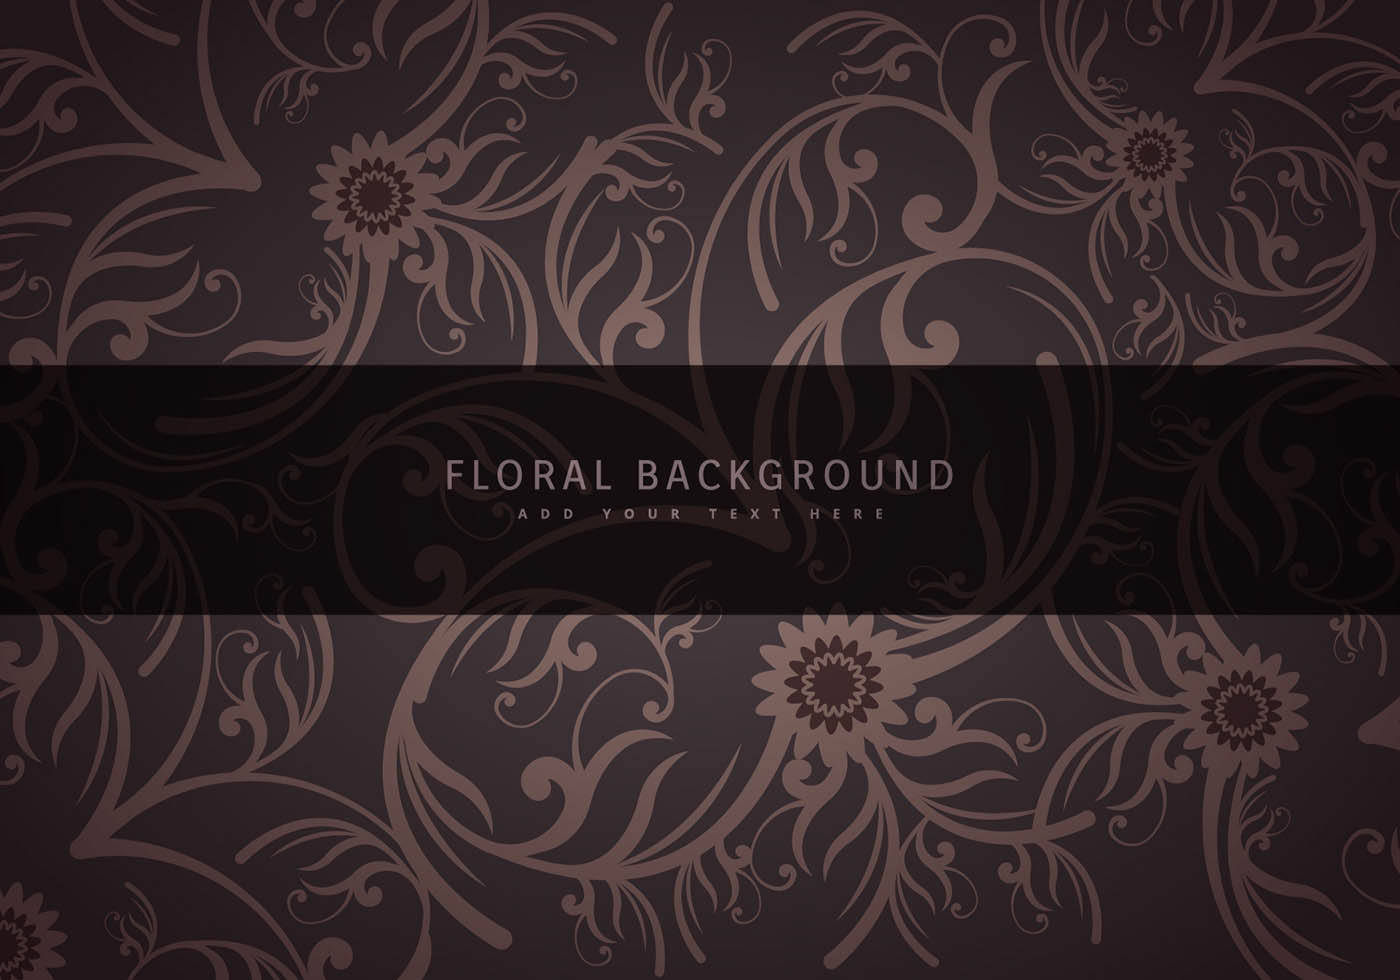 Vintage Floral Background Download Free Vectors Clipart